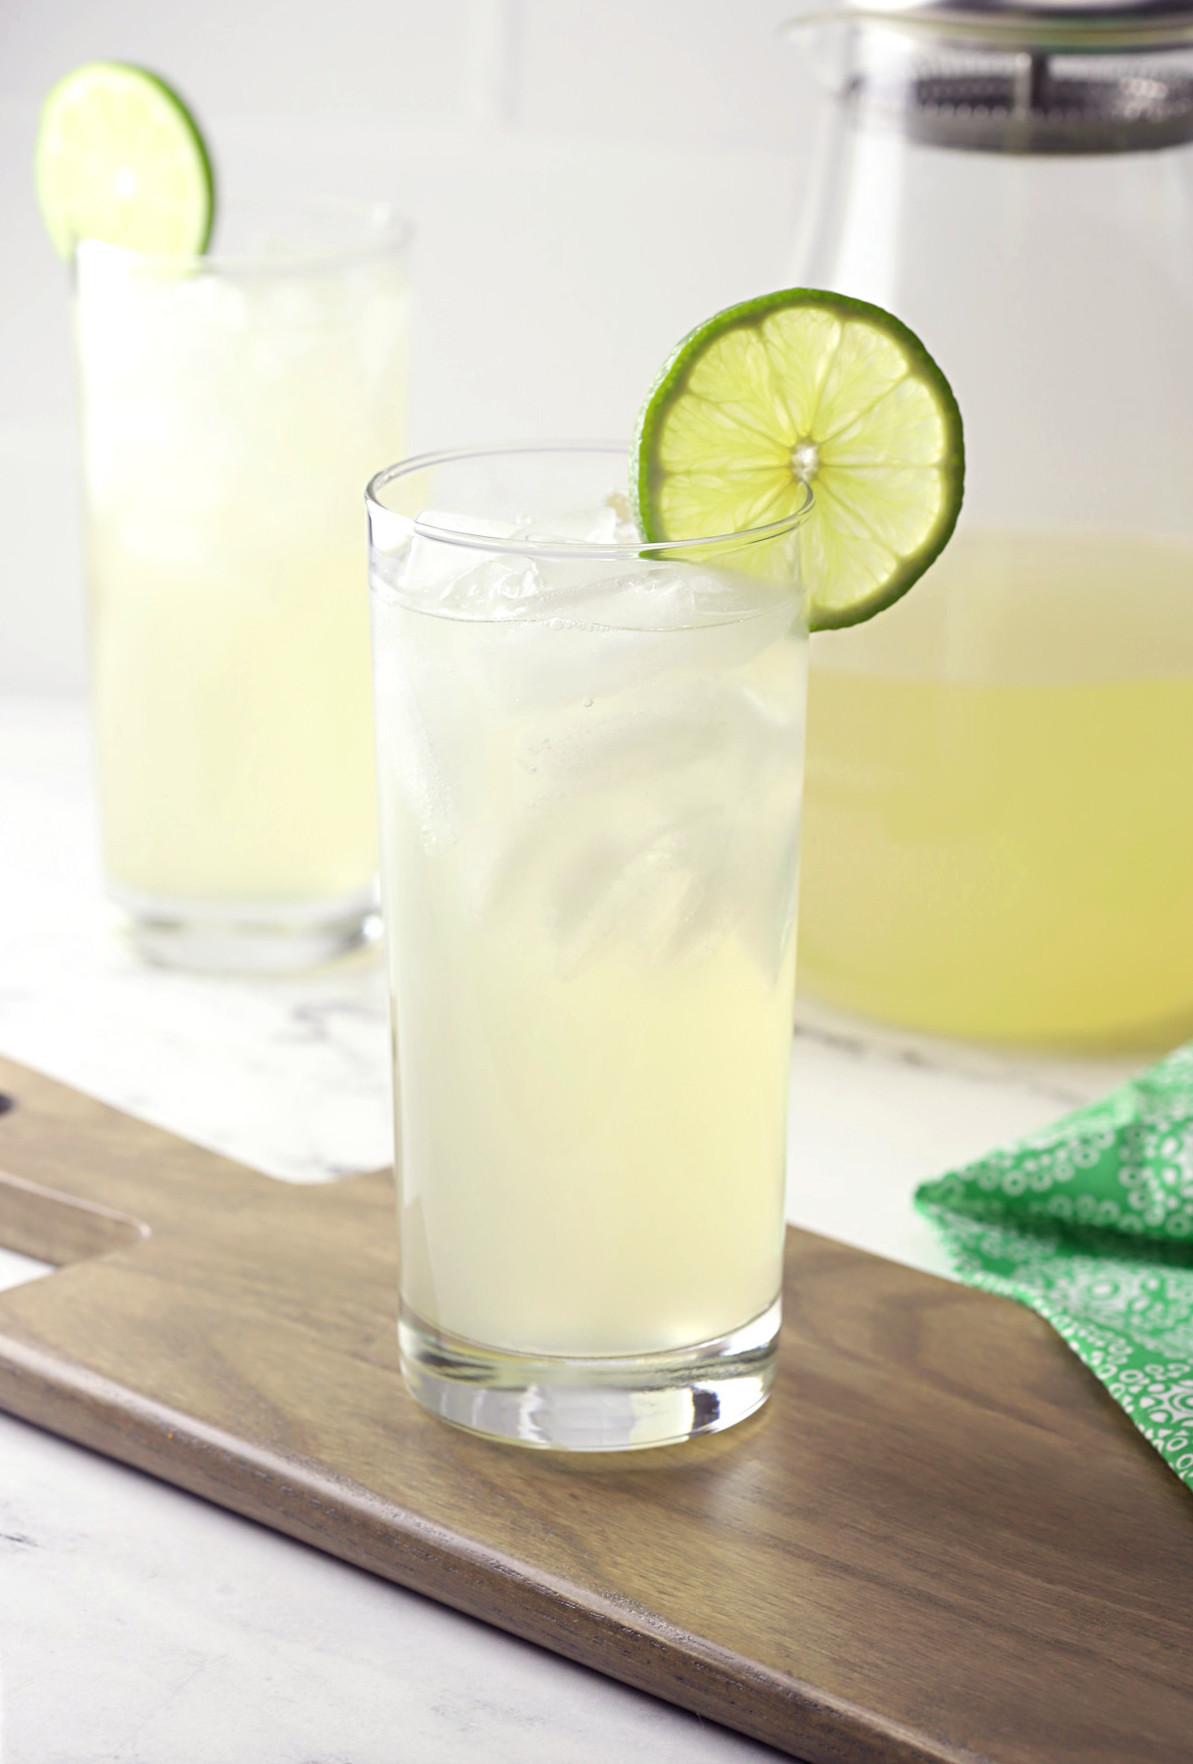 Glass of honey limeade on a wood cutting board.